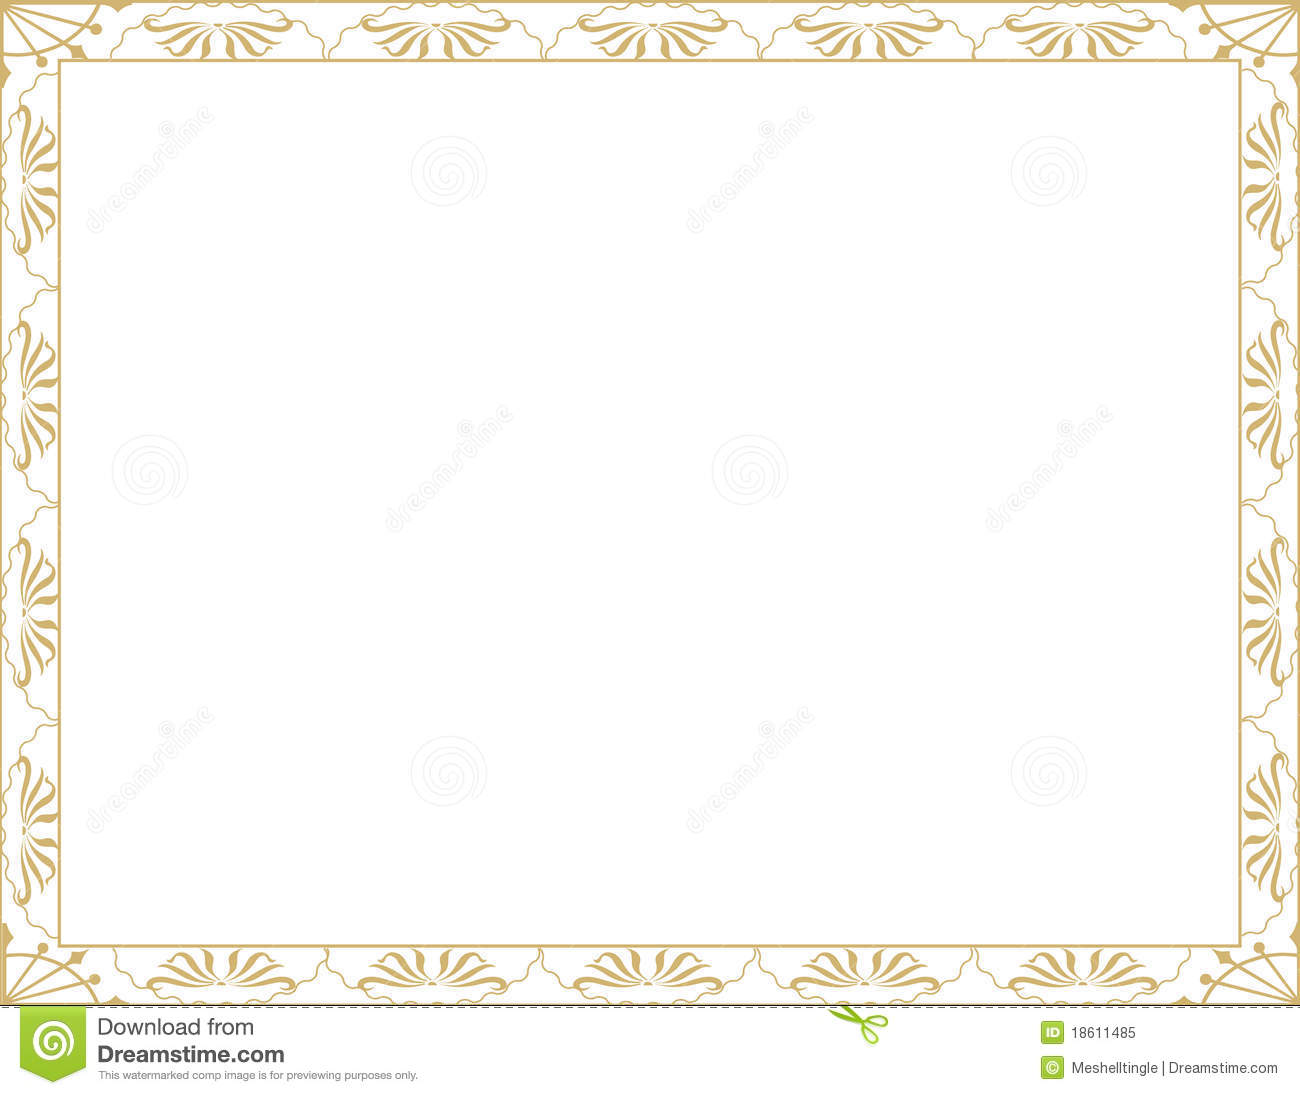 Certificate Photoshop Template